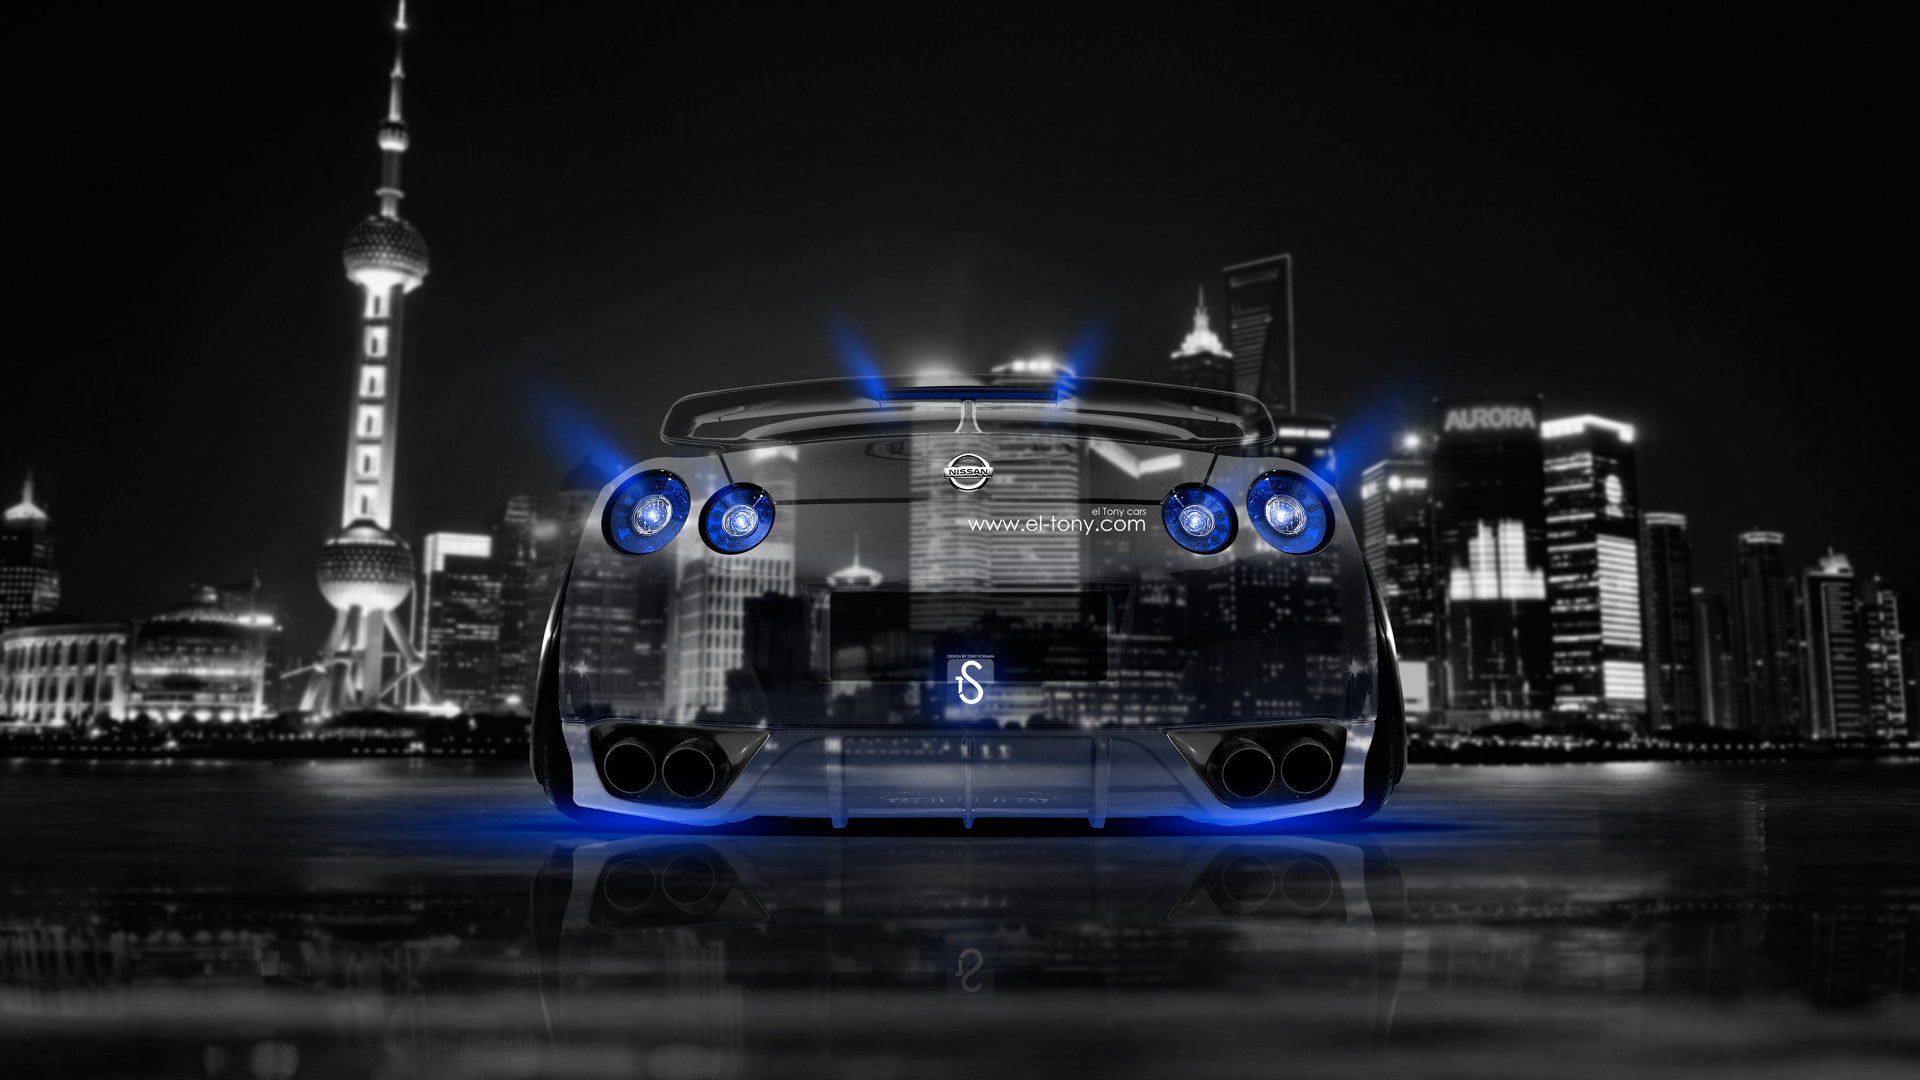 Merveilleux Nissan GTR R35 Back Crystal City Car 2014